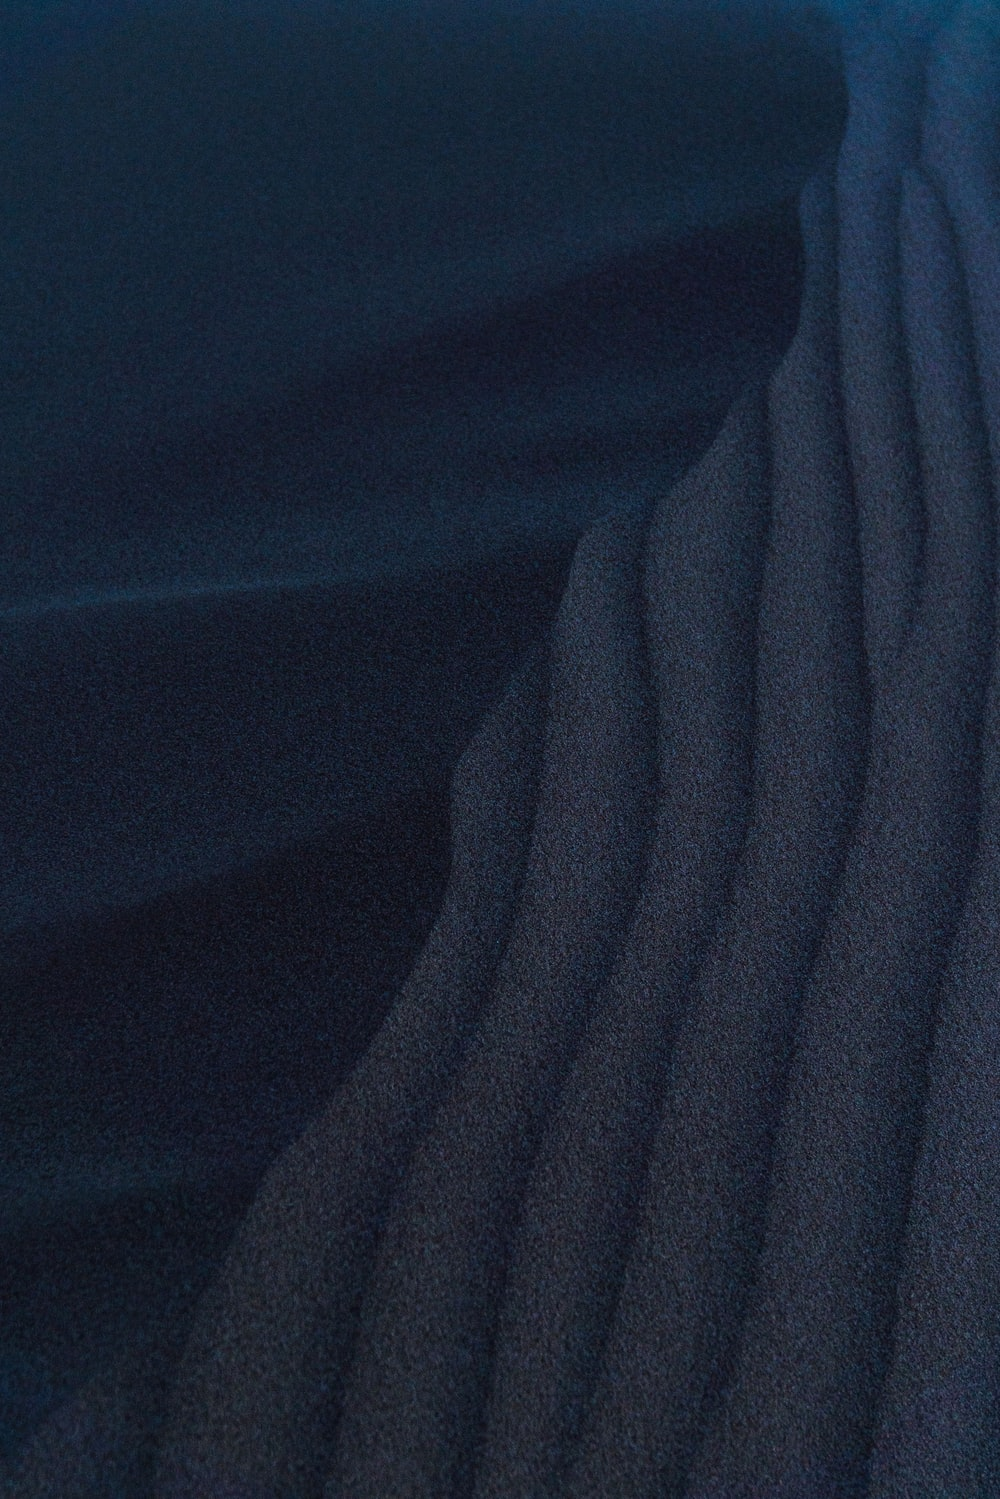 blue textile in close up image